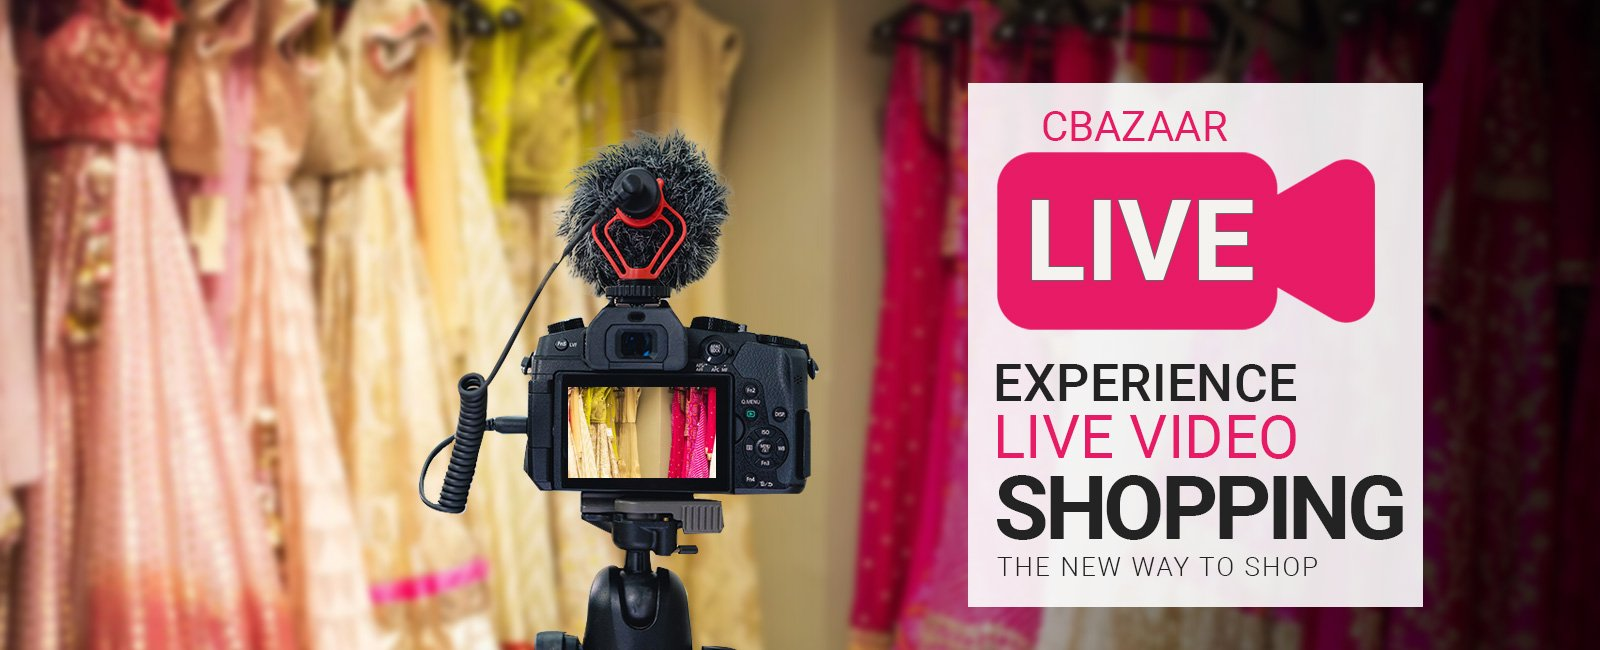 Cbazaar LIVE Experience The New Way To Shop